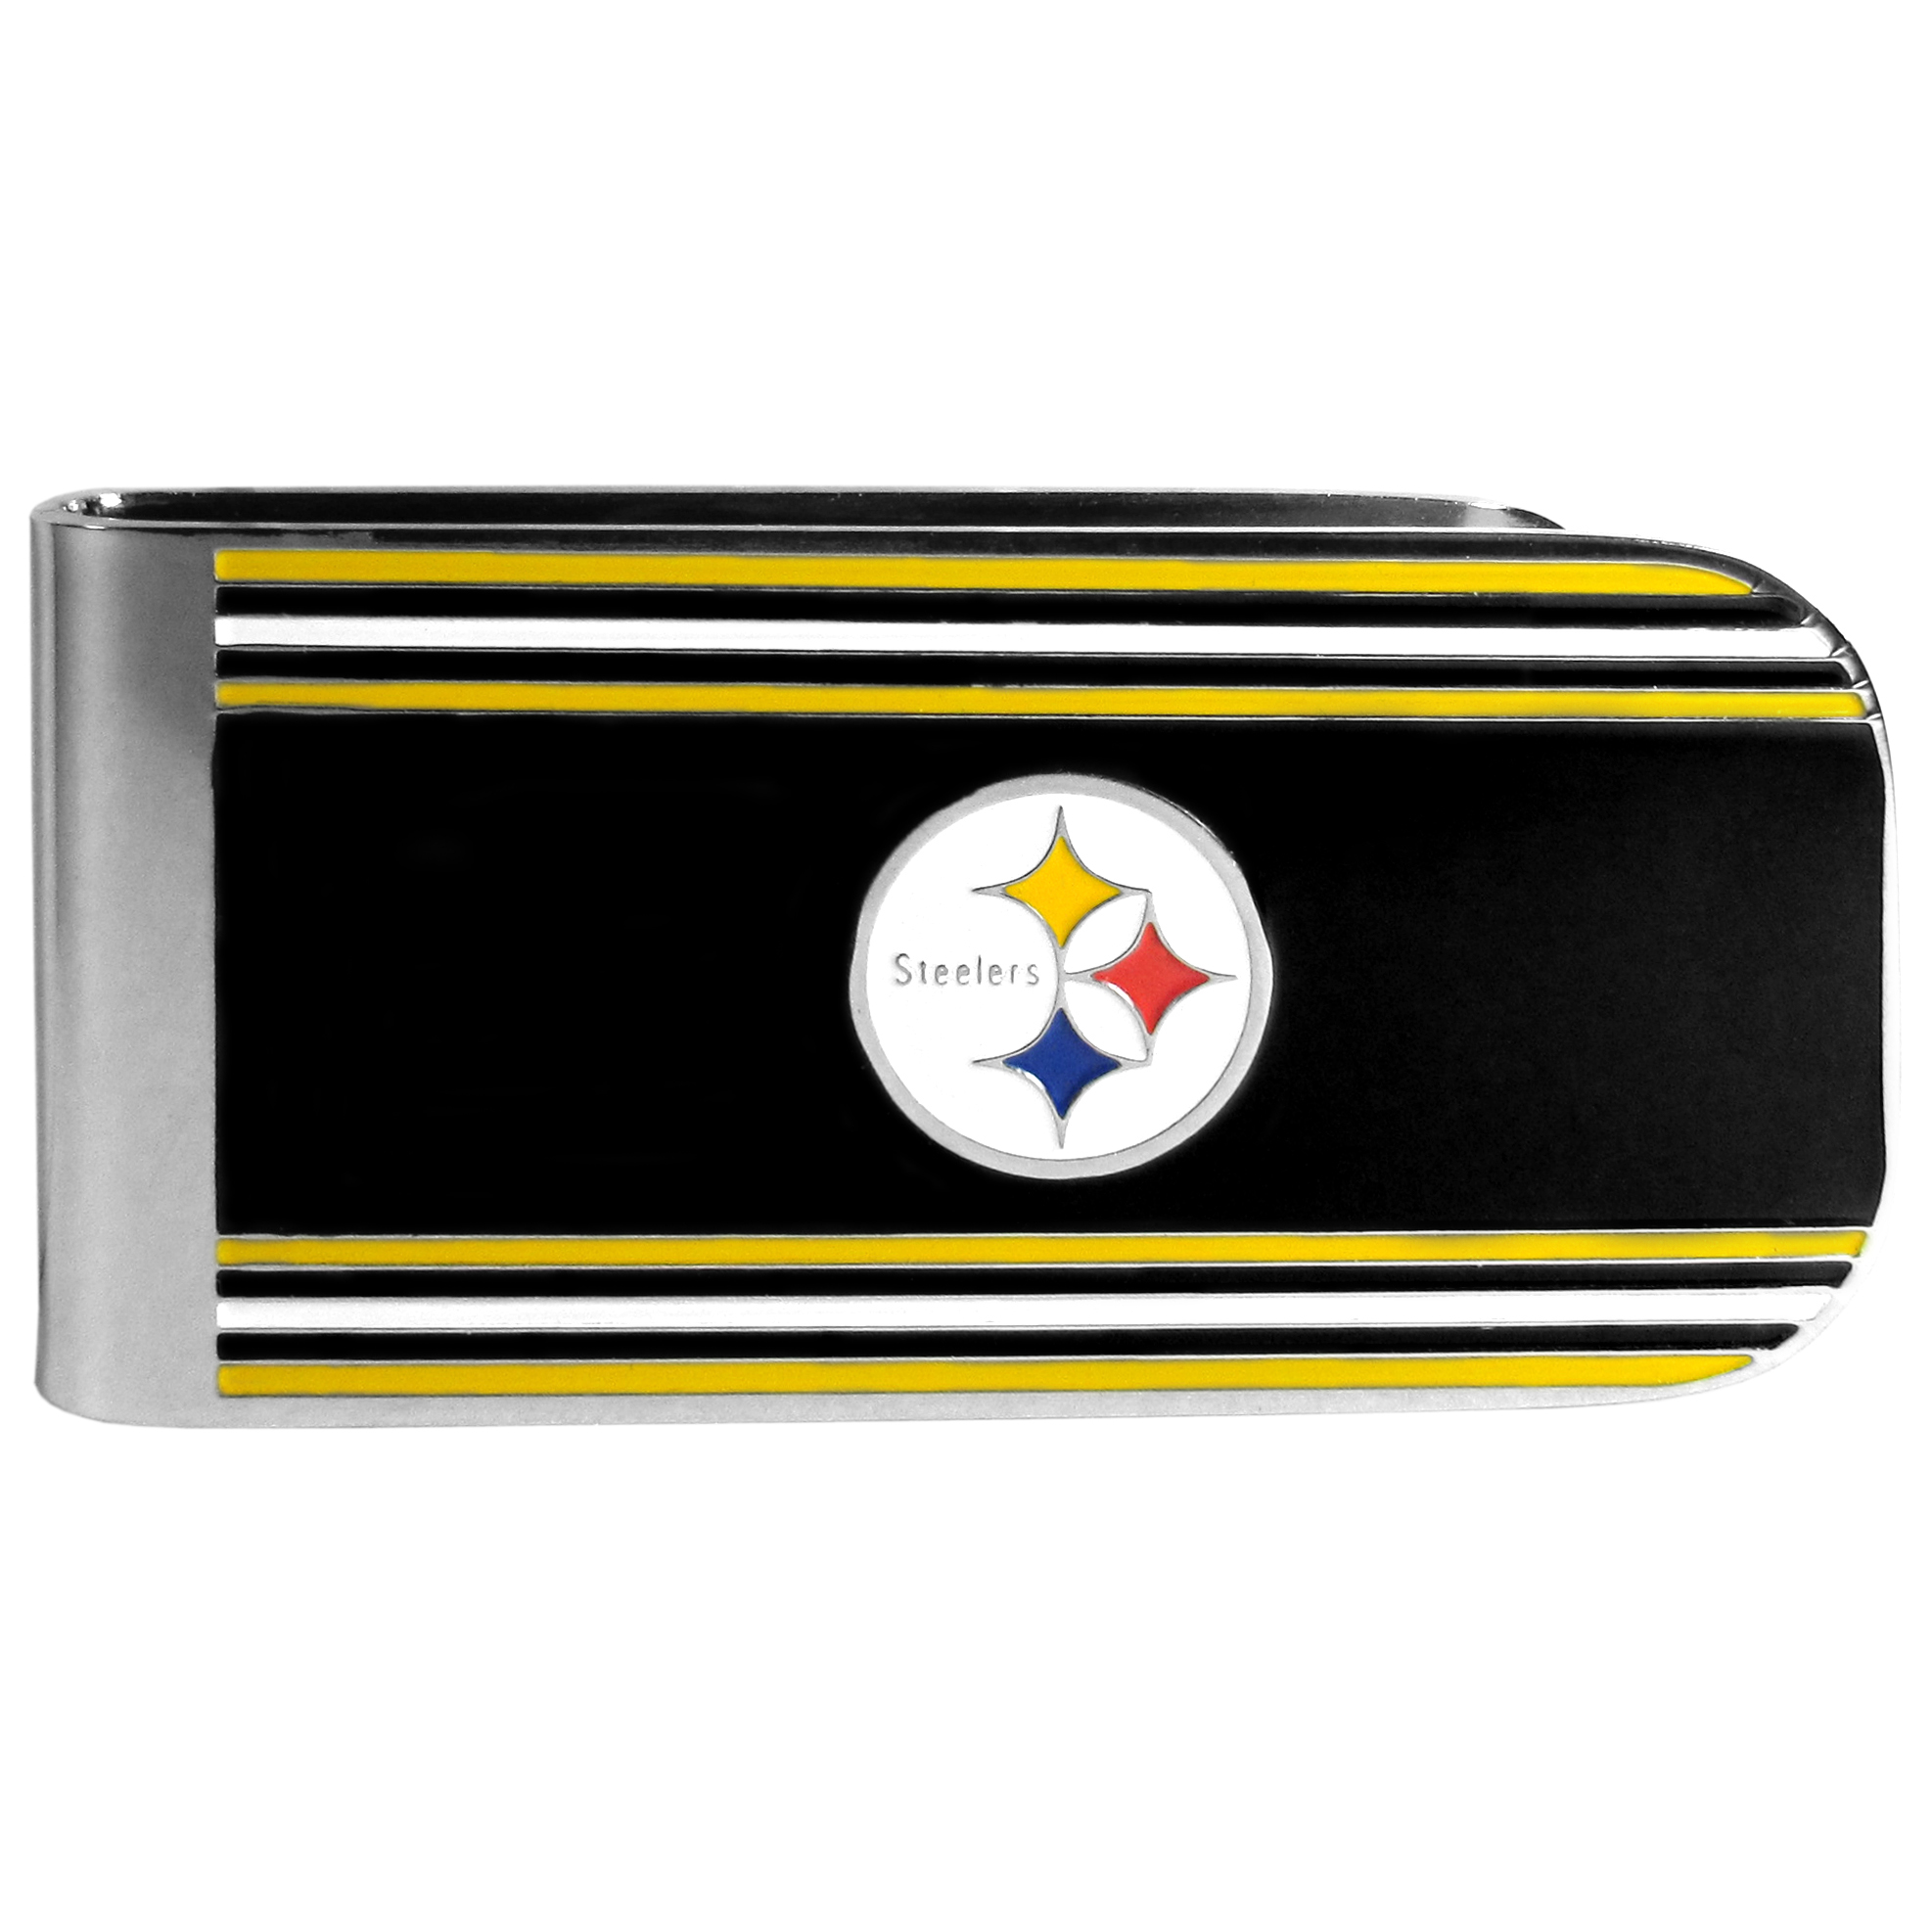 Pittsburgh Steelers MVP Money Clip - Our MVP money clip is made of high quality steel with a chrome overlay and enameled team colors and logo. The exceptional craftmanship on this piece makes it a men's fashion accessory that any fan would be proud to own. The cast detail in the Pittsburgh Steelers logo is perfectly detailed. The clip features an inner spring to hold your cash and cards securely in place.